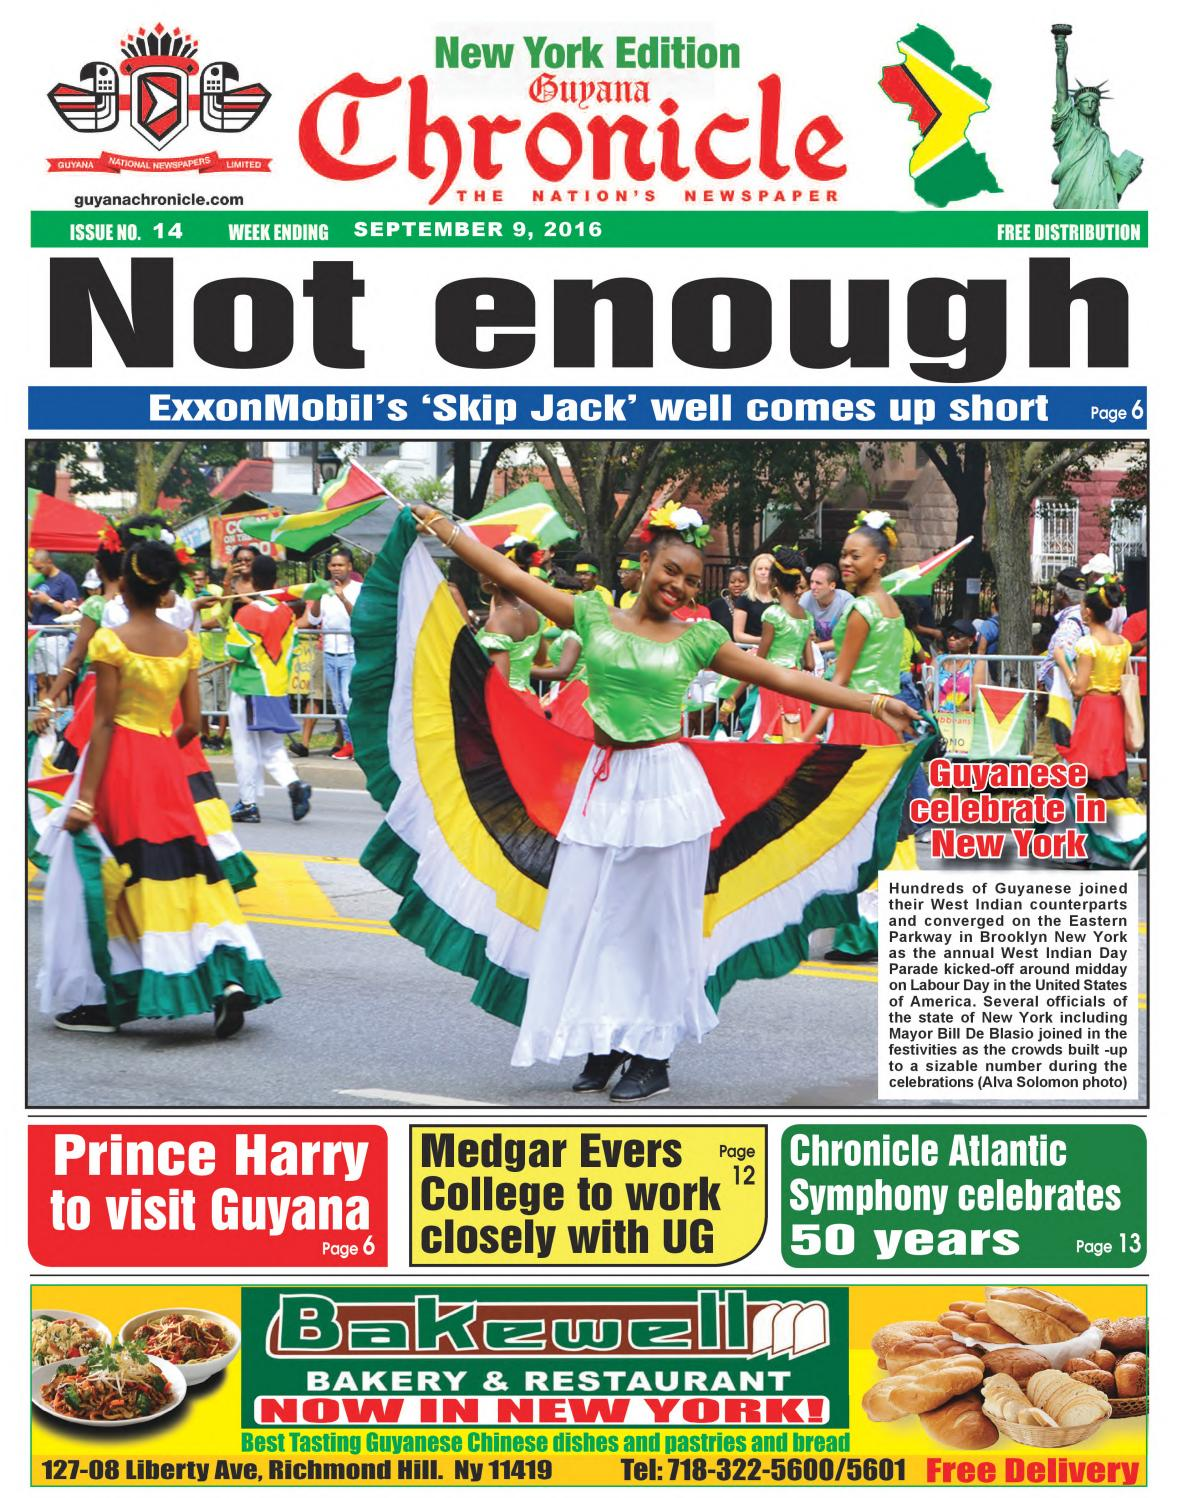 New york usa 11th nov 2015 telephone bidders stand in front of the - Guyana Chronicle New York Edition 09 09 2016 By Guyana Chronicle E Paper Issuu